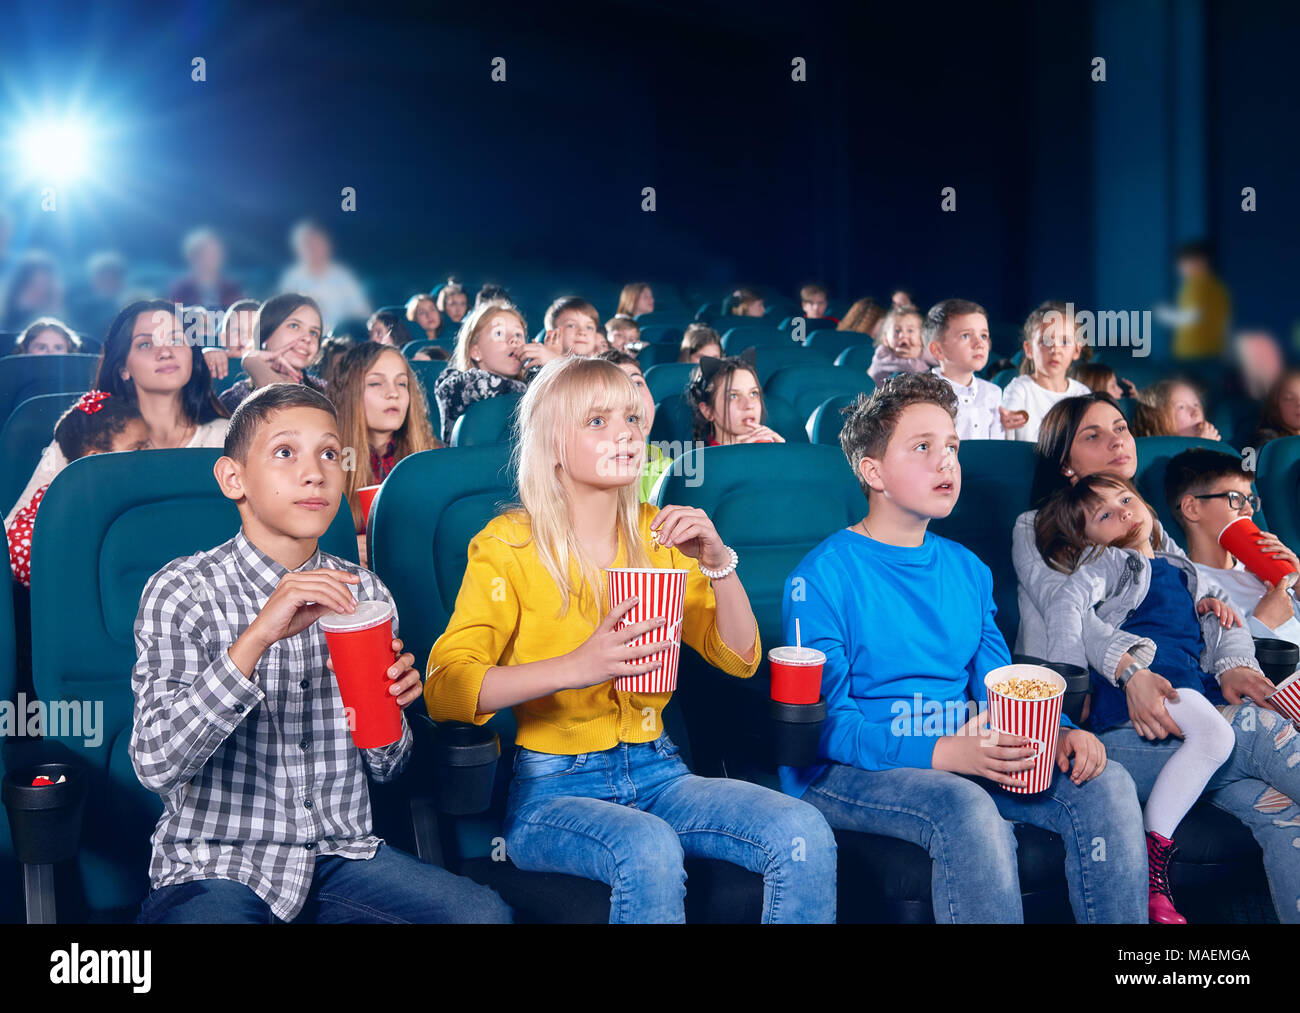 frontview of little exited children watching interesting movie in cinema hall. Boys and girls look very emotional and happy. schoolmates wearing colorful clothes,eating popcorn, drinking fizzy drinks. - Stock Image